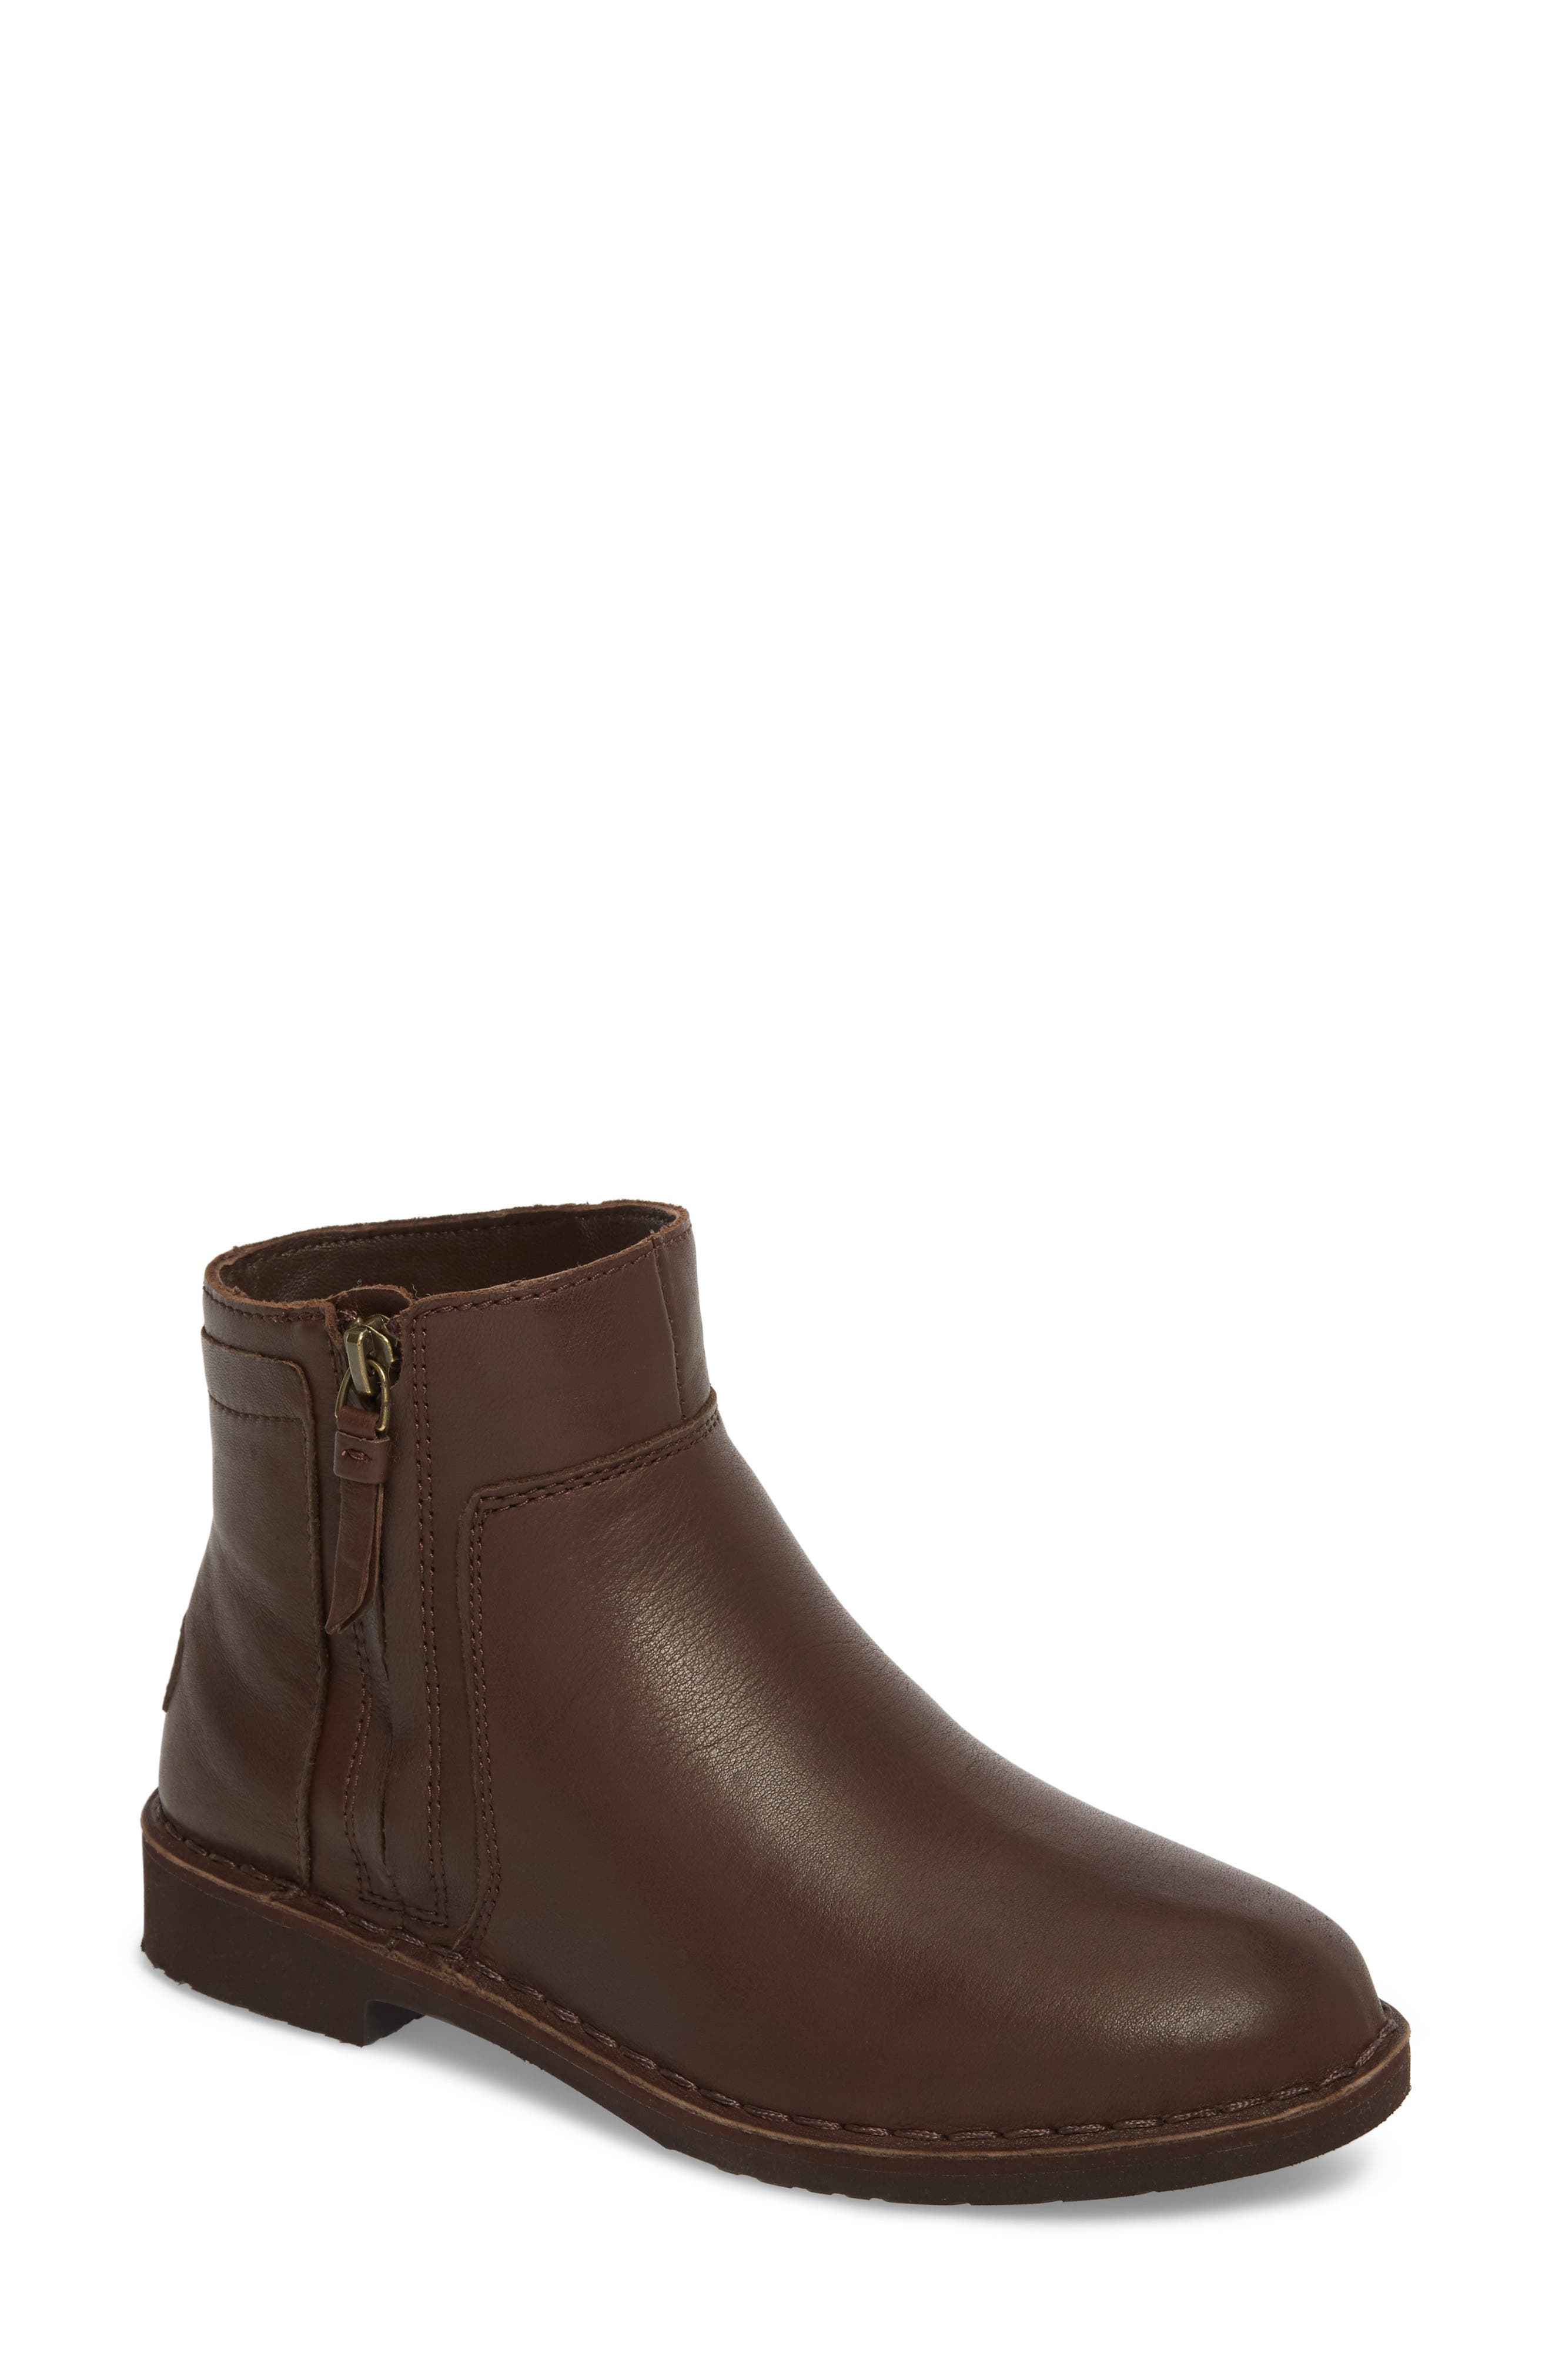 Rea Bootie,                             Main thumbnail 1, color,                             Stout Leather